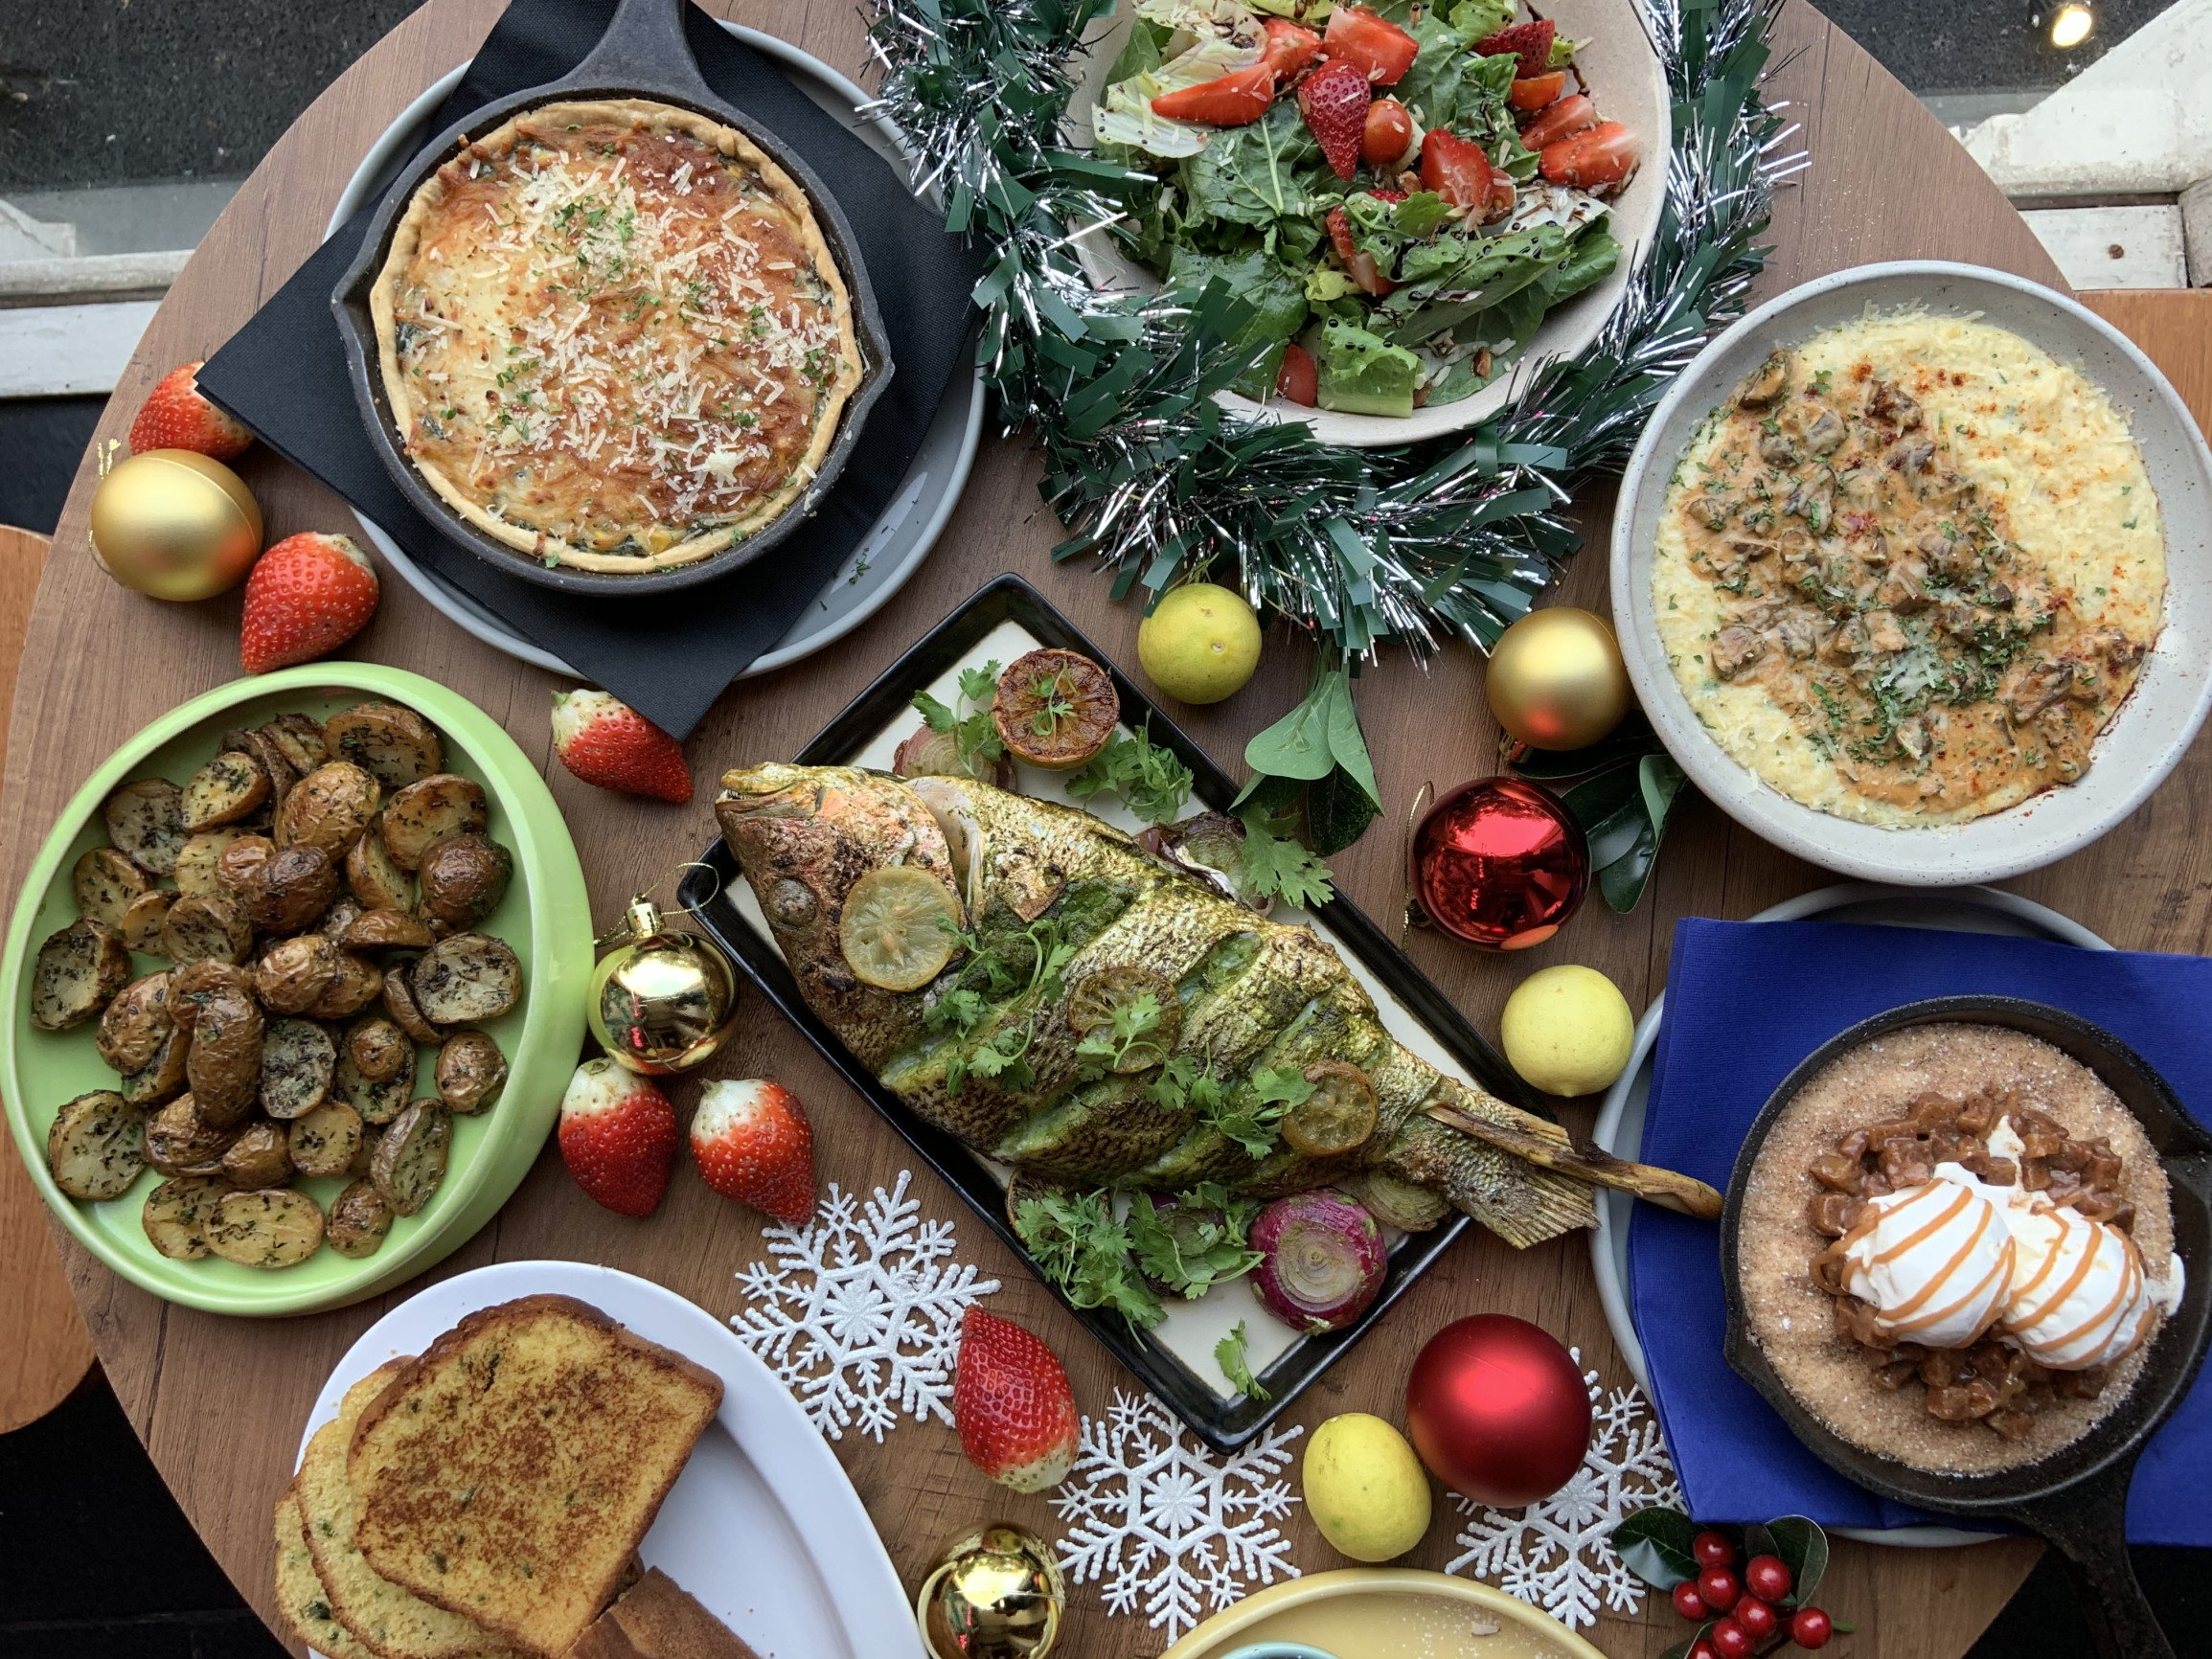 Head Over To These Restaurants For Your Wholesome Christmas Brunch